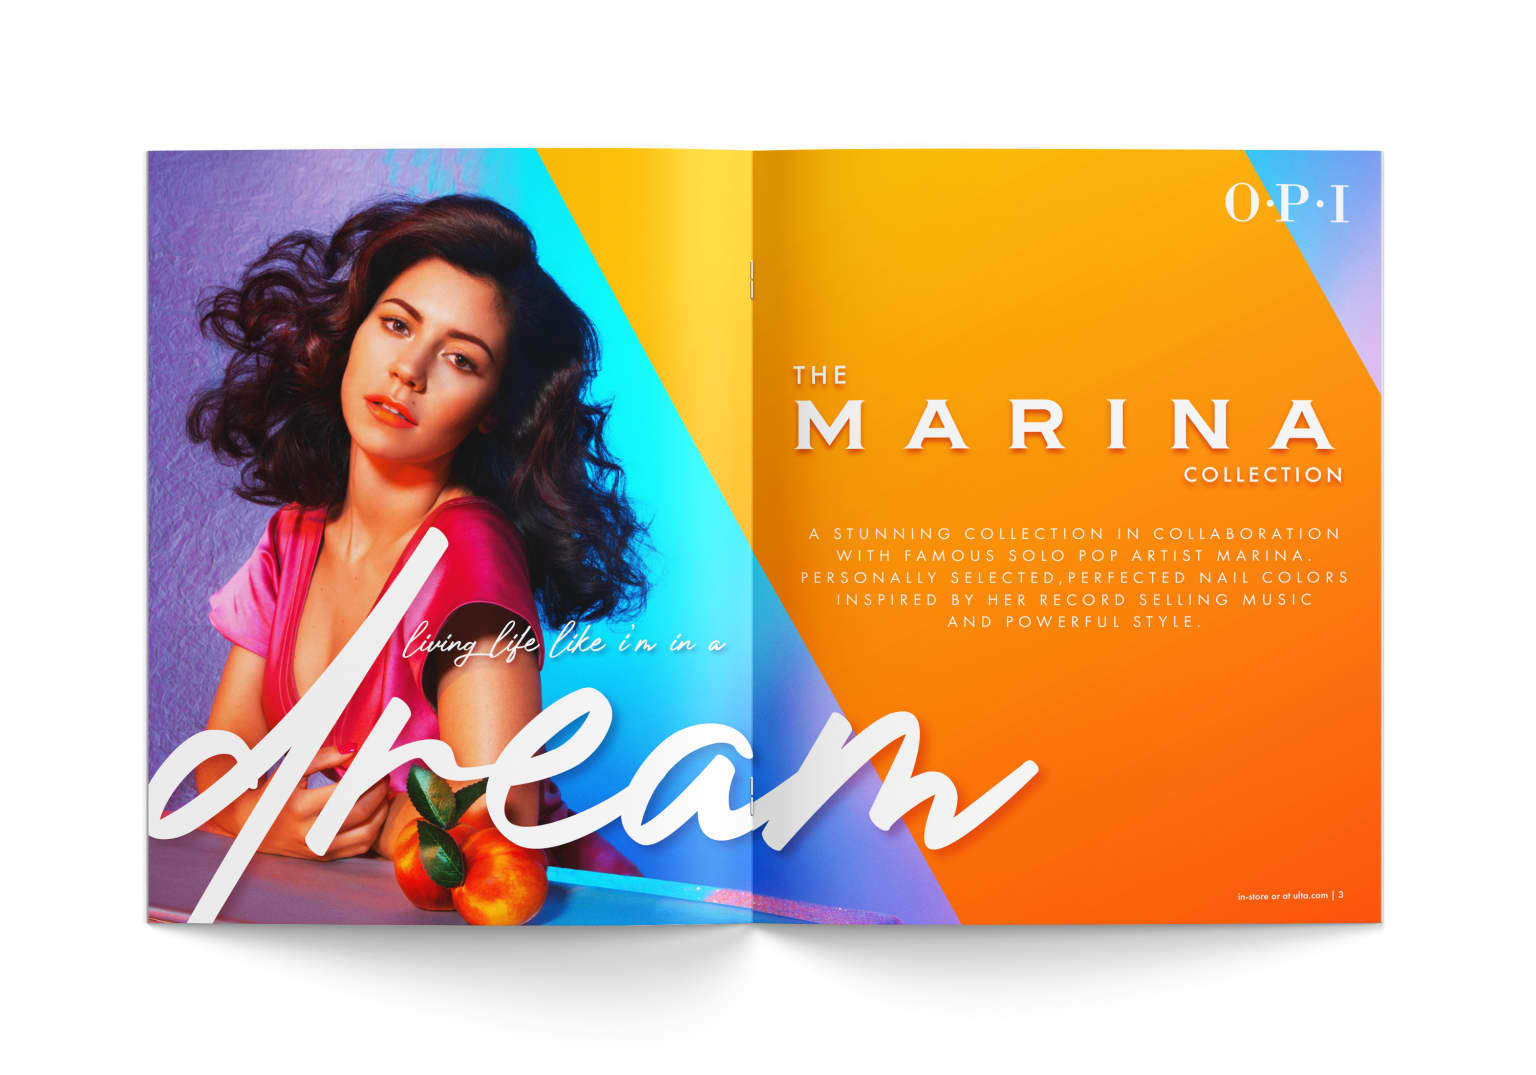 THE MARINA COLLECTION by OPI